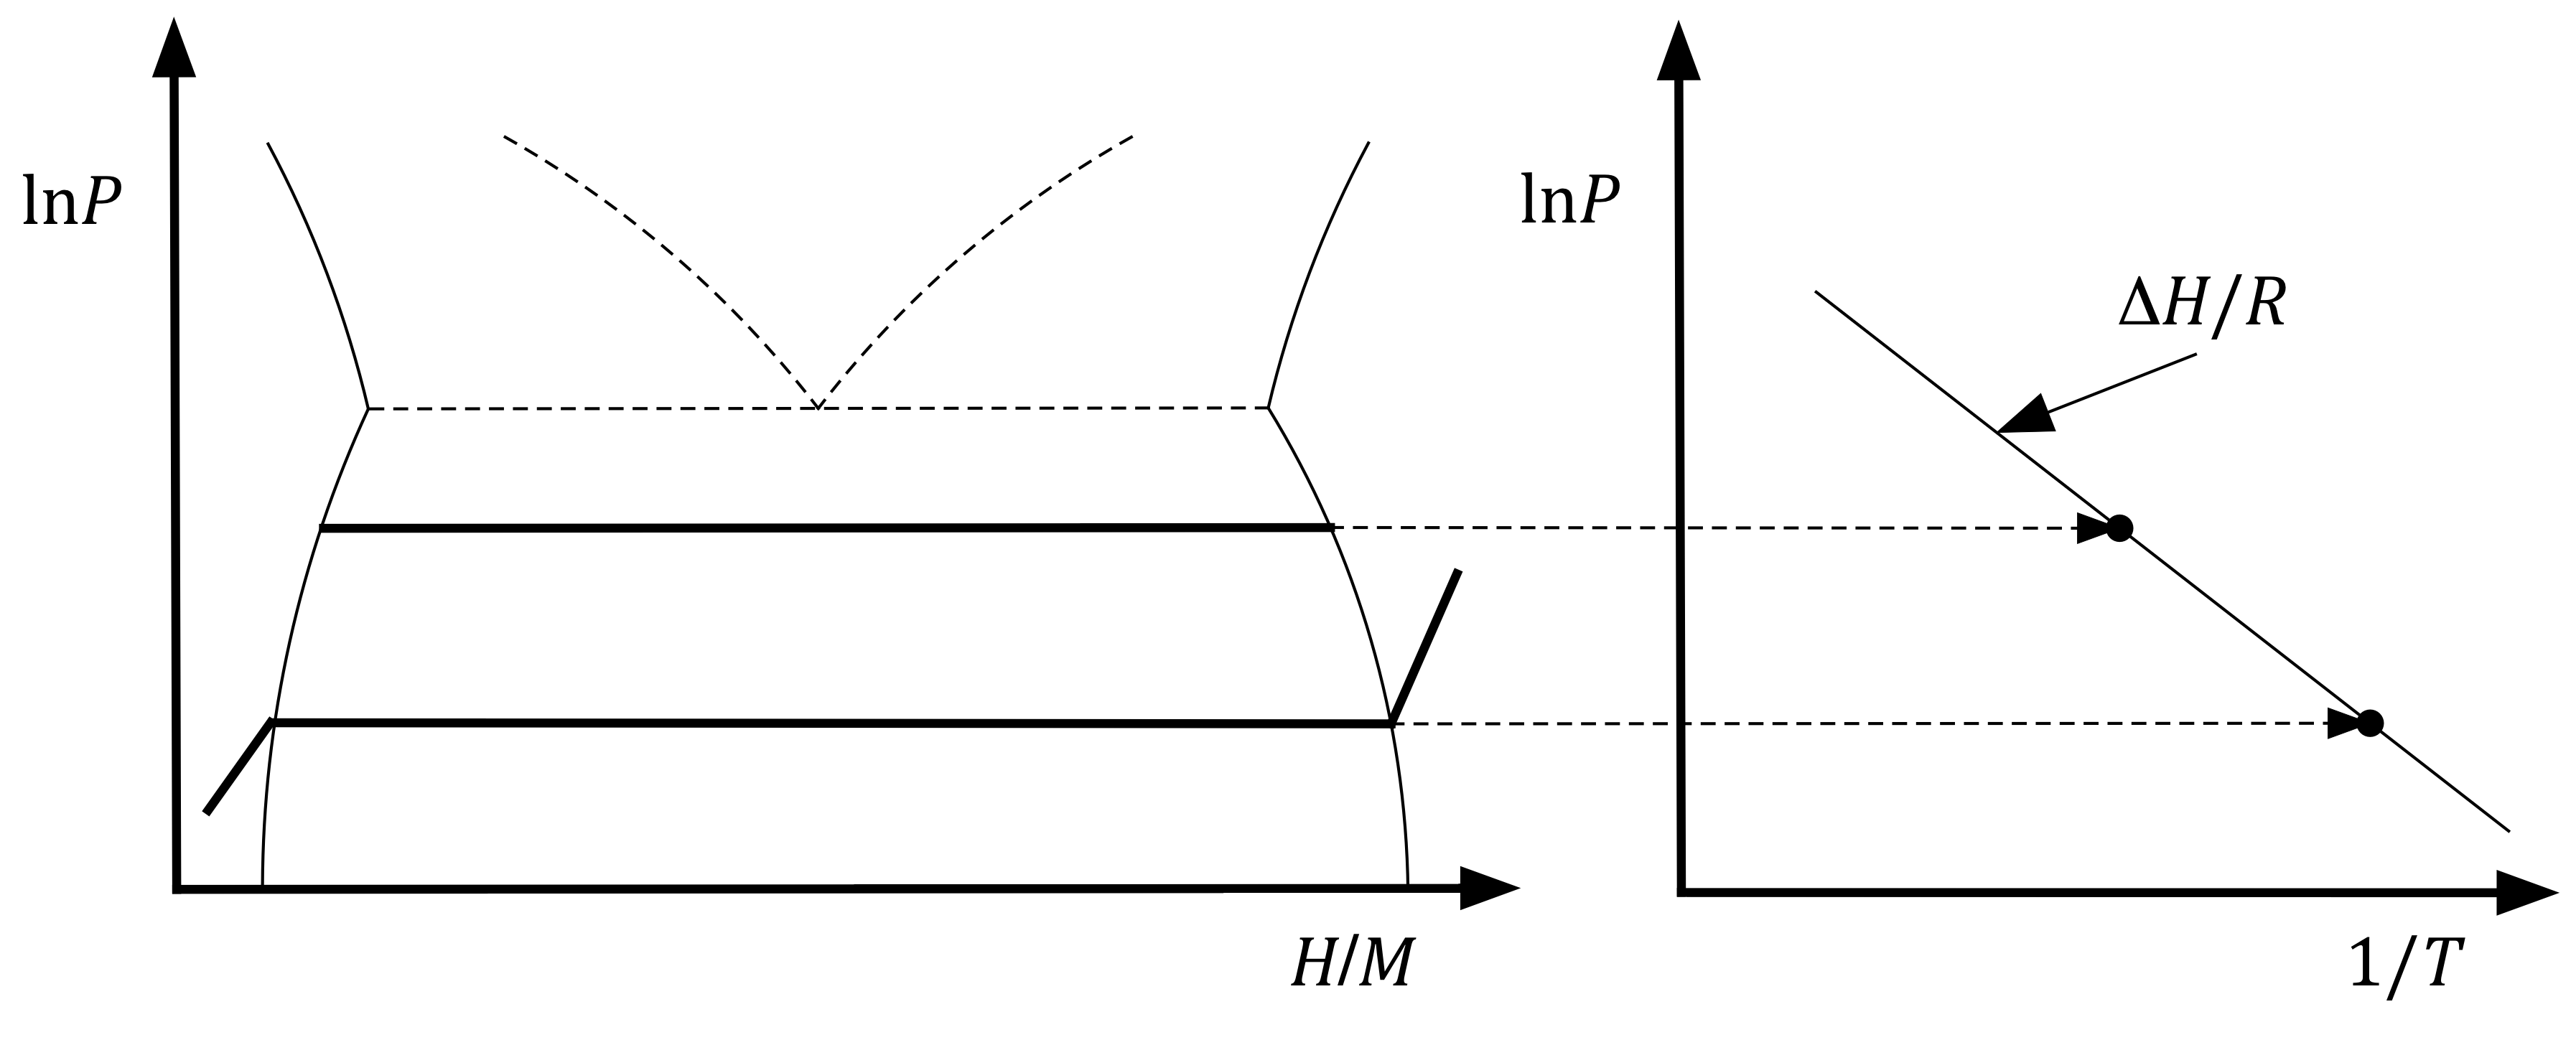 Pressureposition Isotherms At Left Illustrate How The Equilibrium Pressure  At A Given Temperature Can Be Used How To Calculate Slope